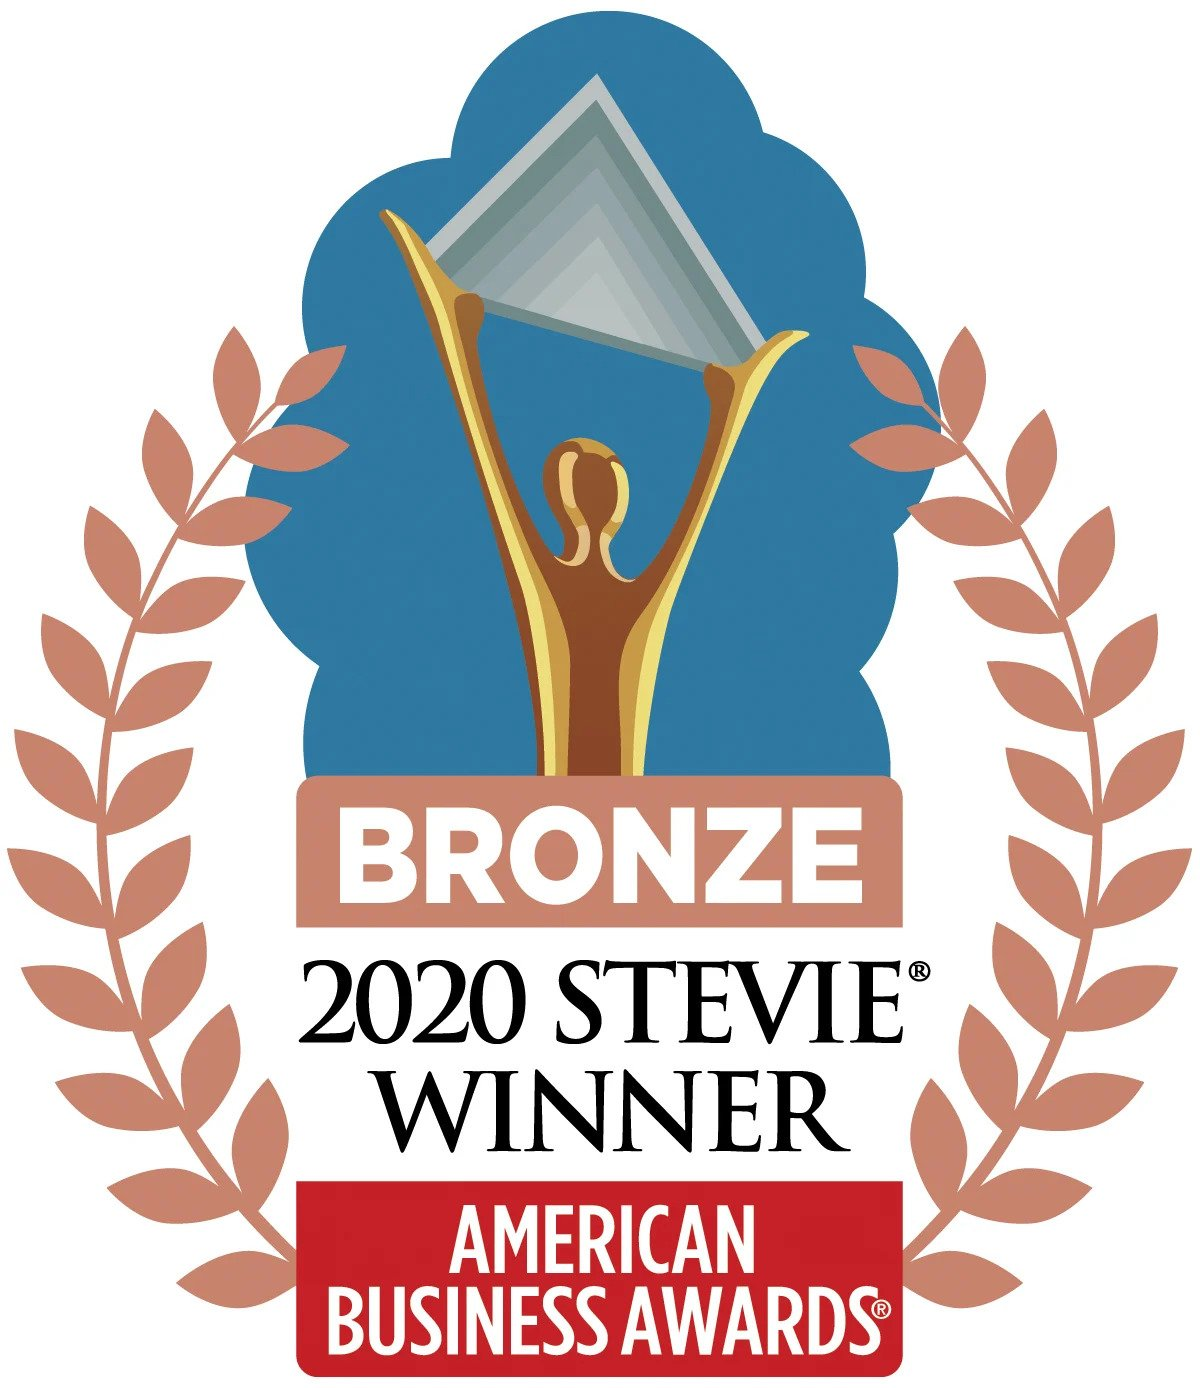 Very Wins Bronze Stevie® Award in 2020 American Business Awards®